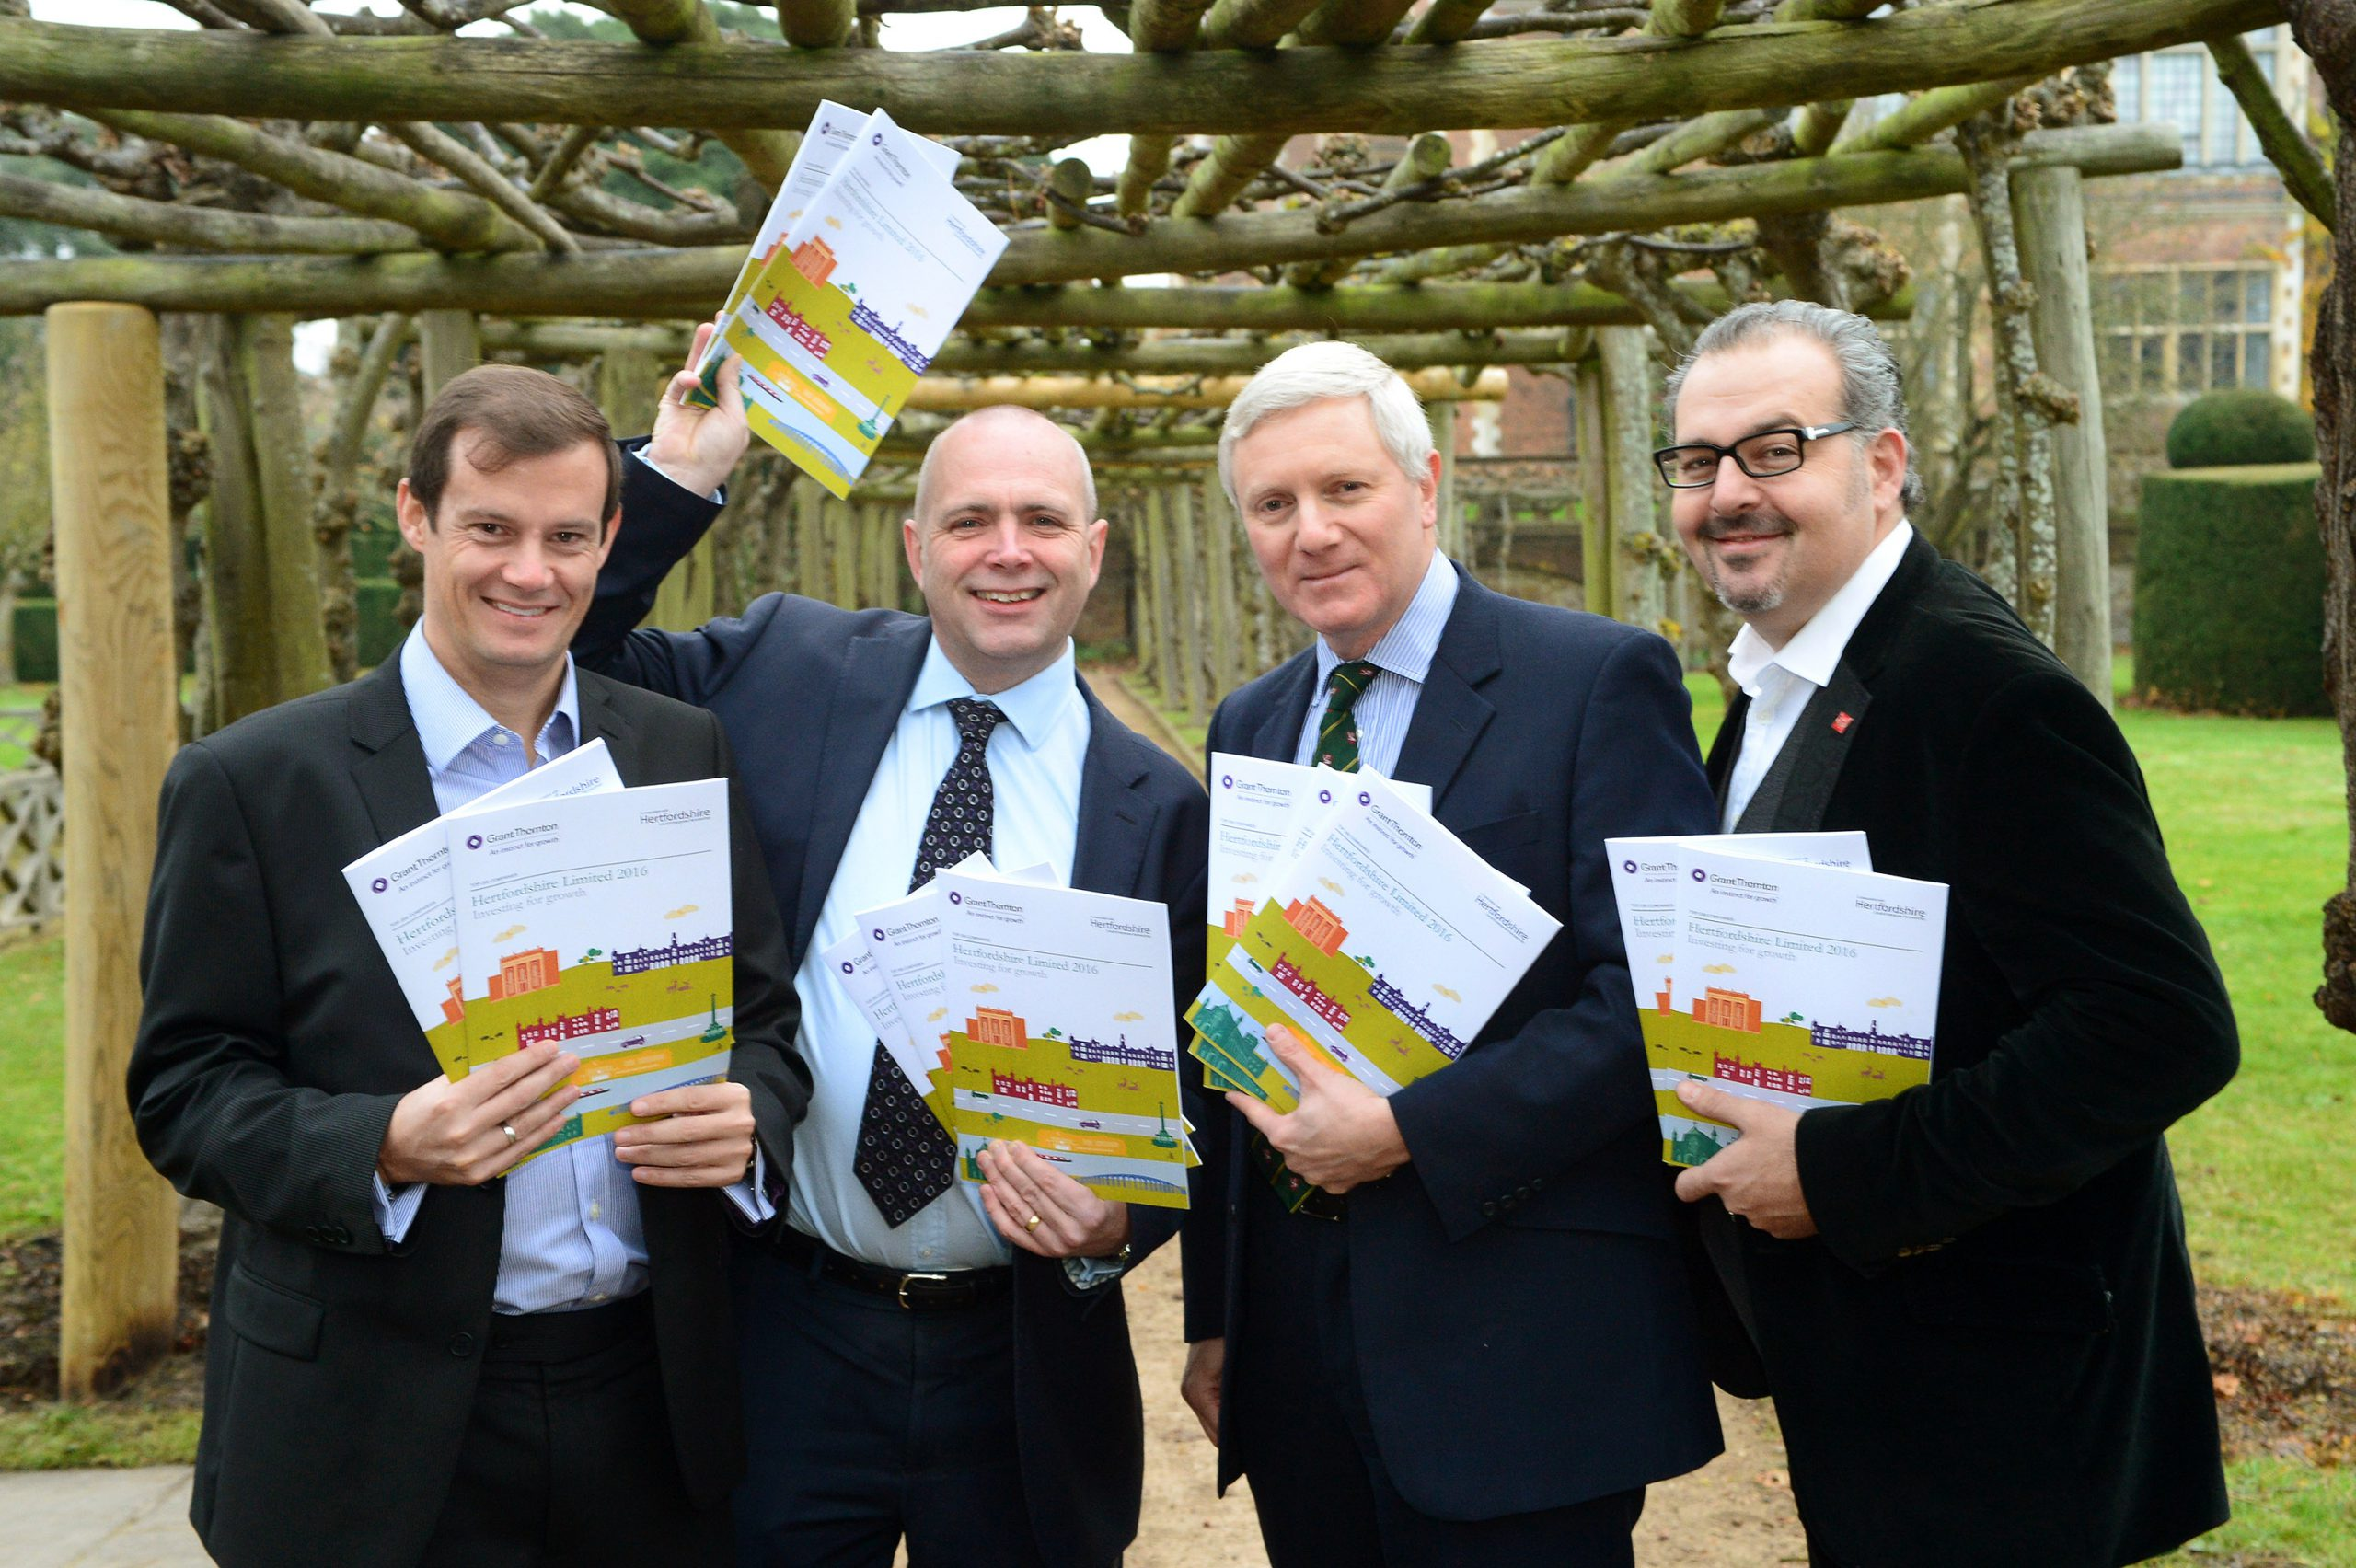 Hertfordshire's largest 200 businesses achieve substantial growth in sales, profits and employment